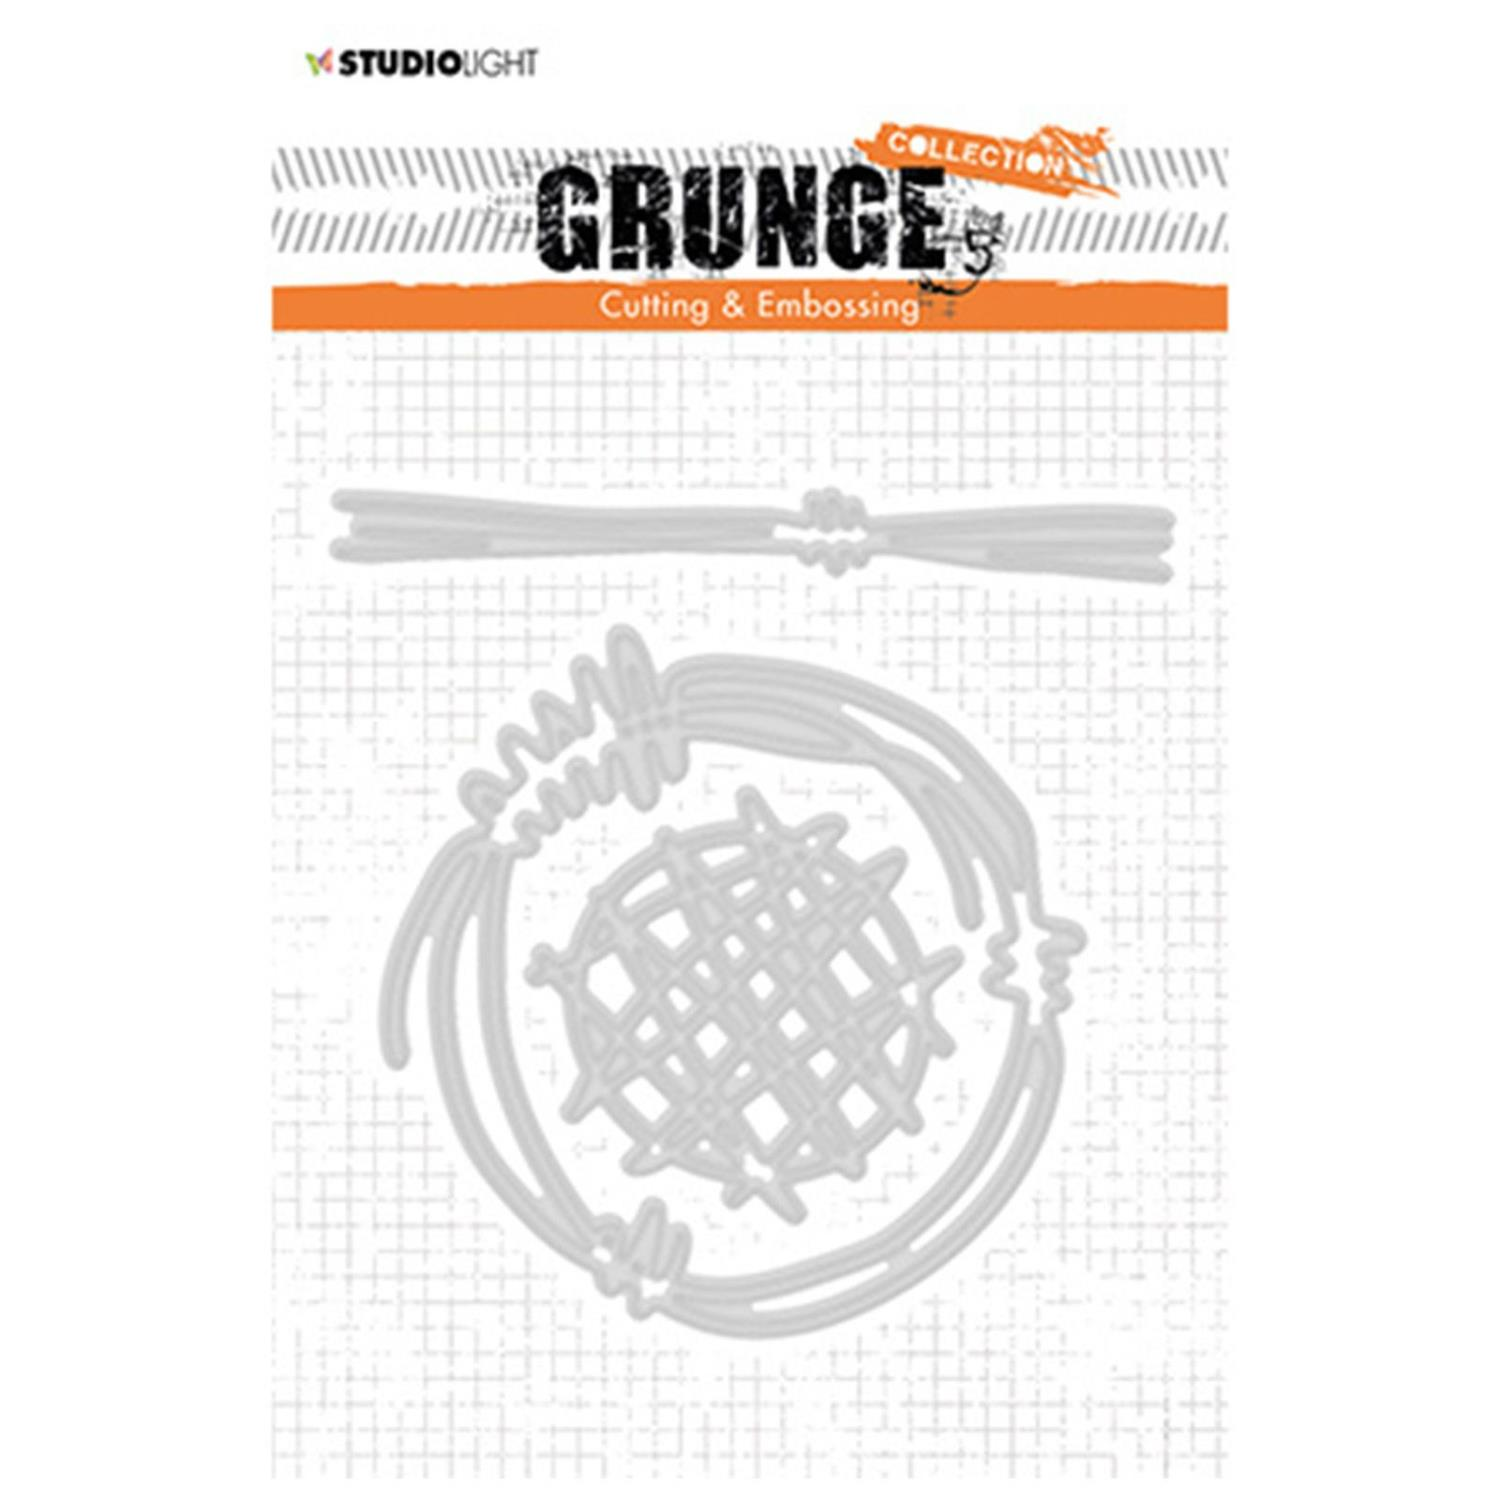 Studio Light • Embossing die cut Grunge 4.0 nr.273